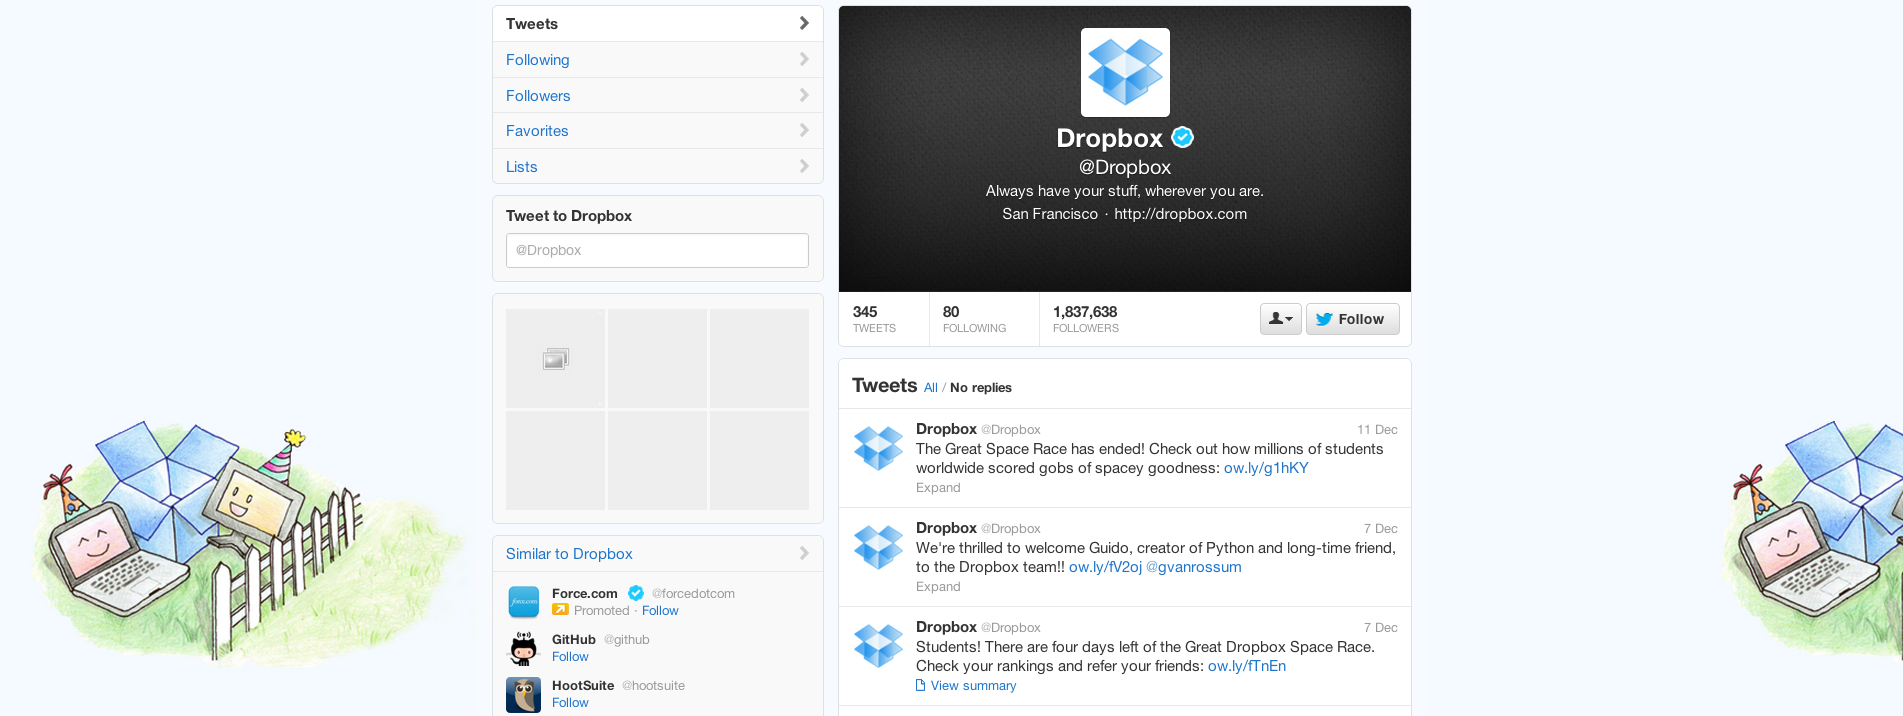 Twitter Profile For Dropbox Showing The Background